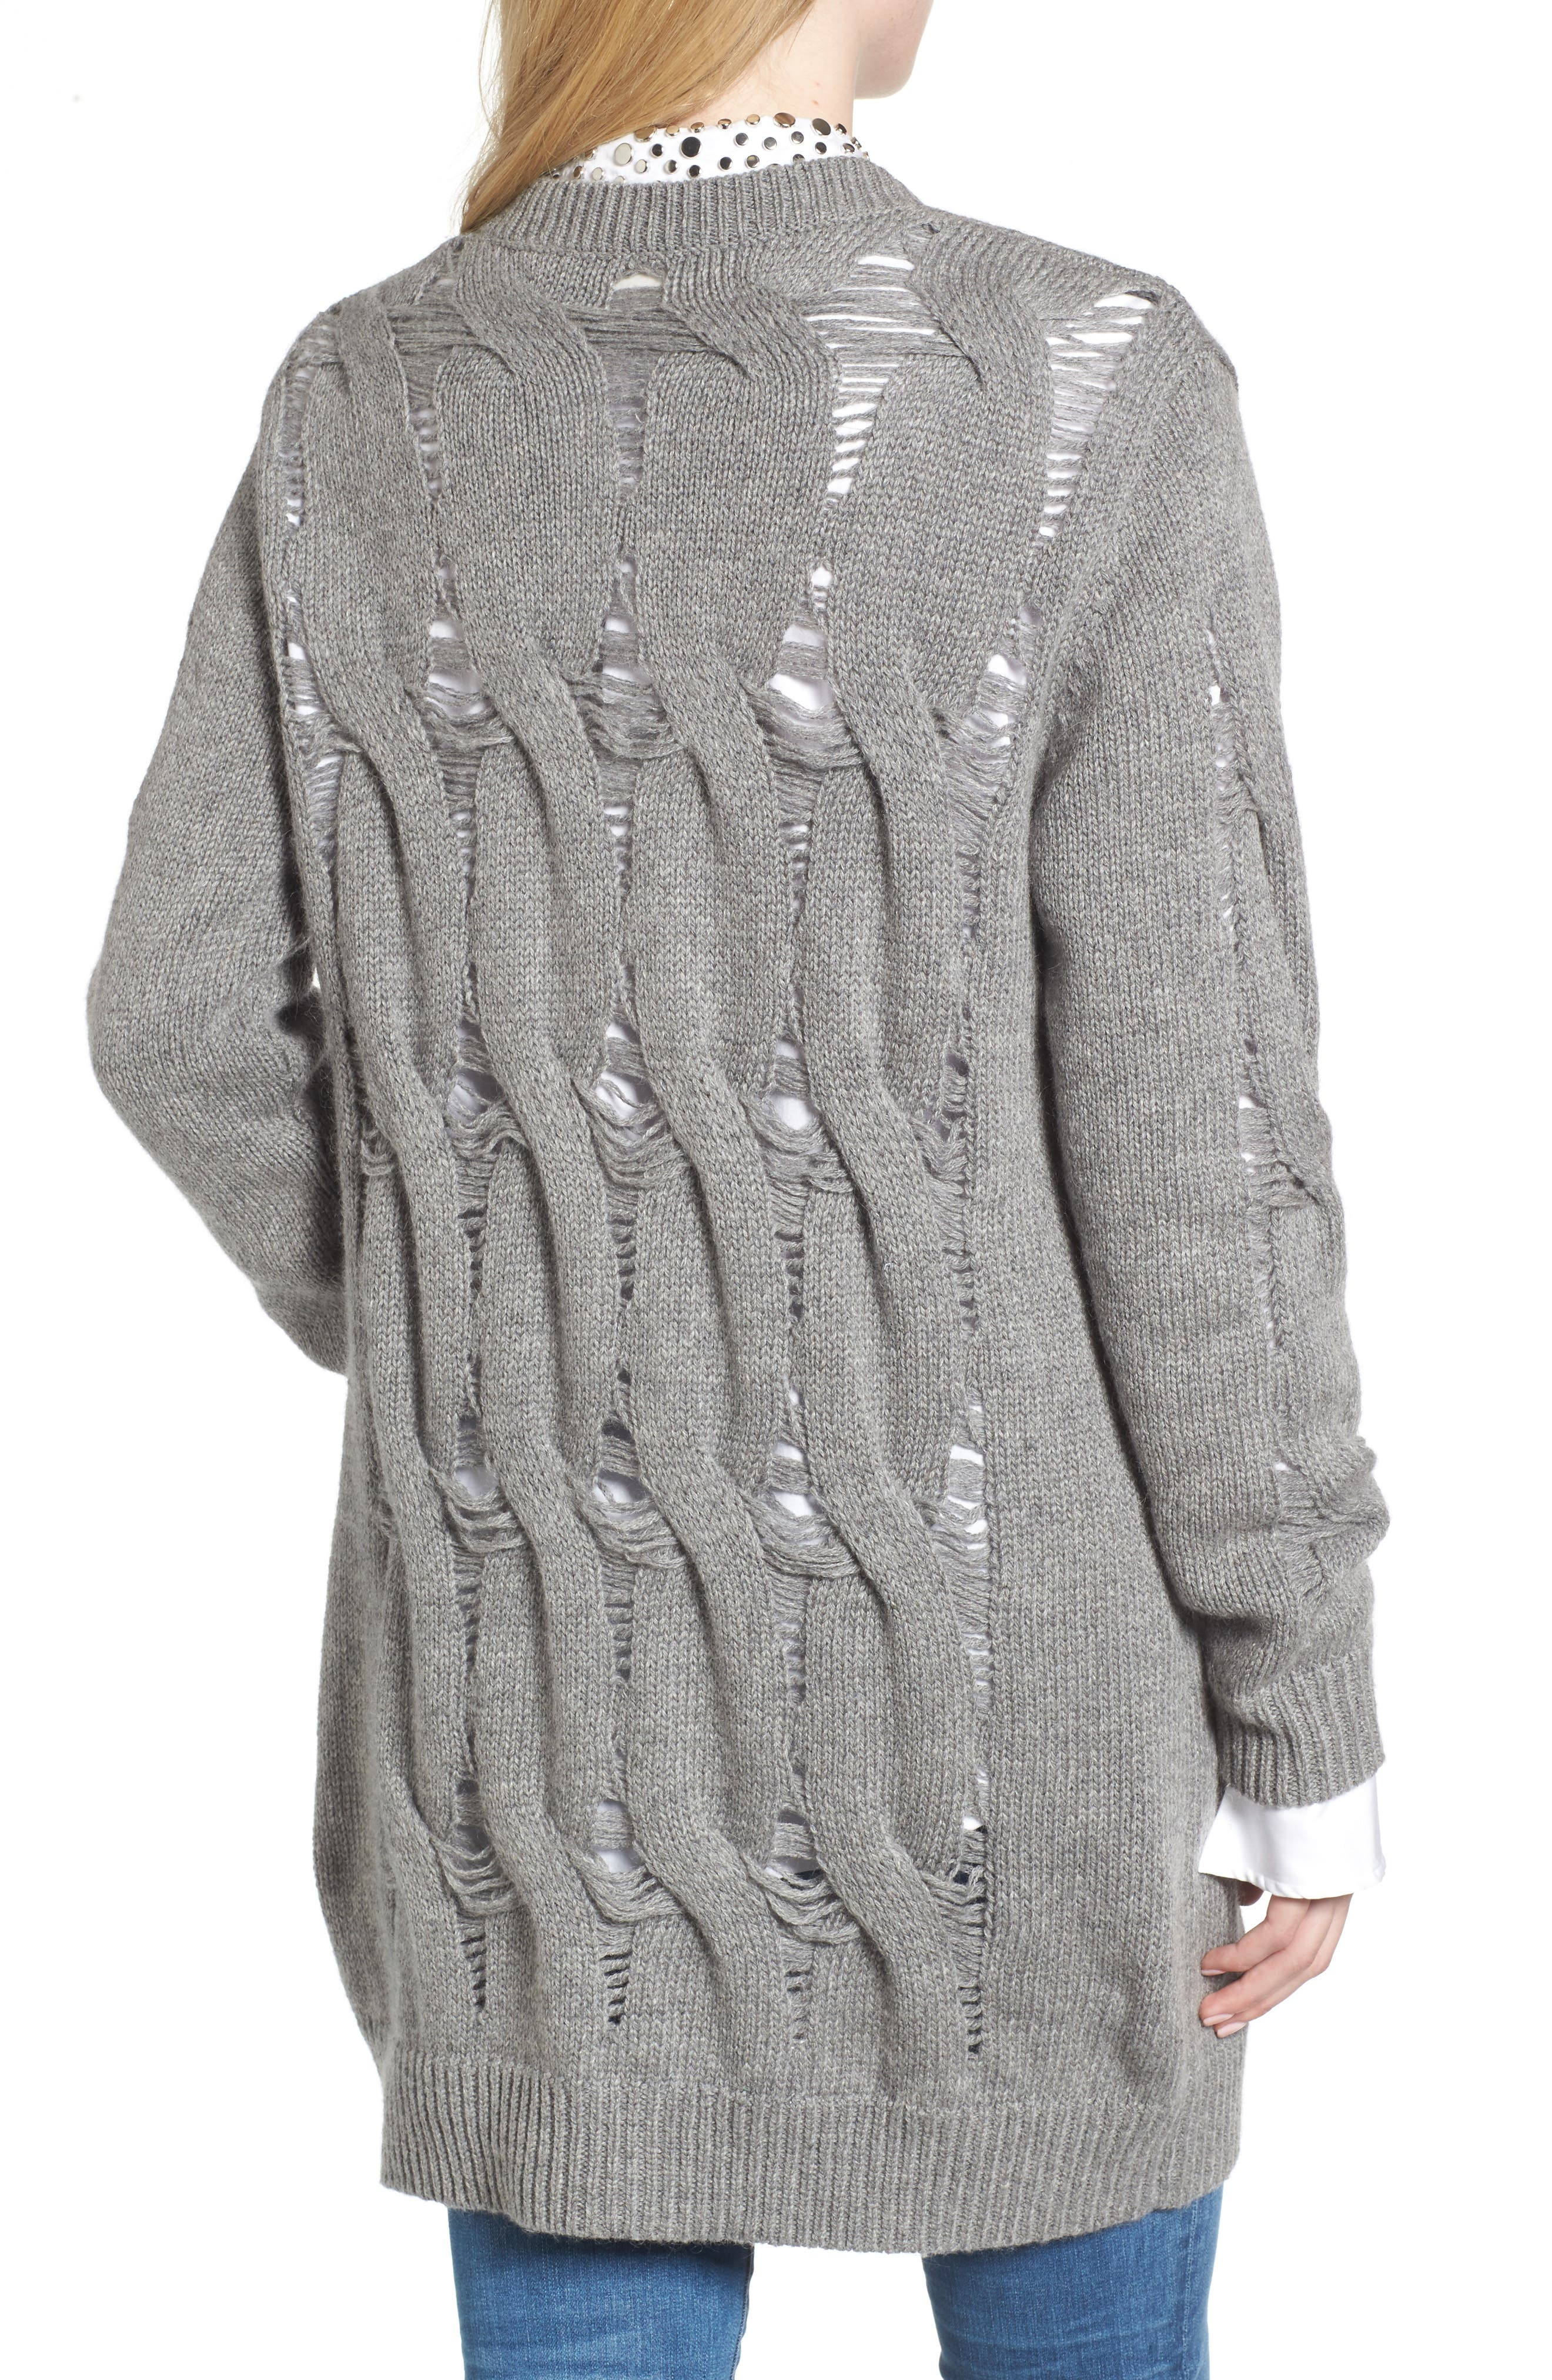 Sandrine Longline Cardigan Sweater,                             Alternate thumbnail 2, color,                             033